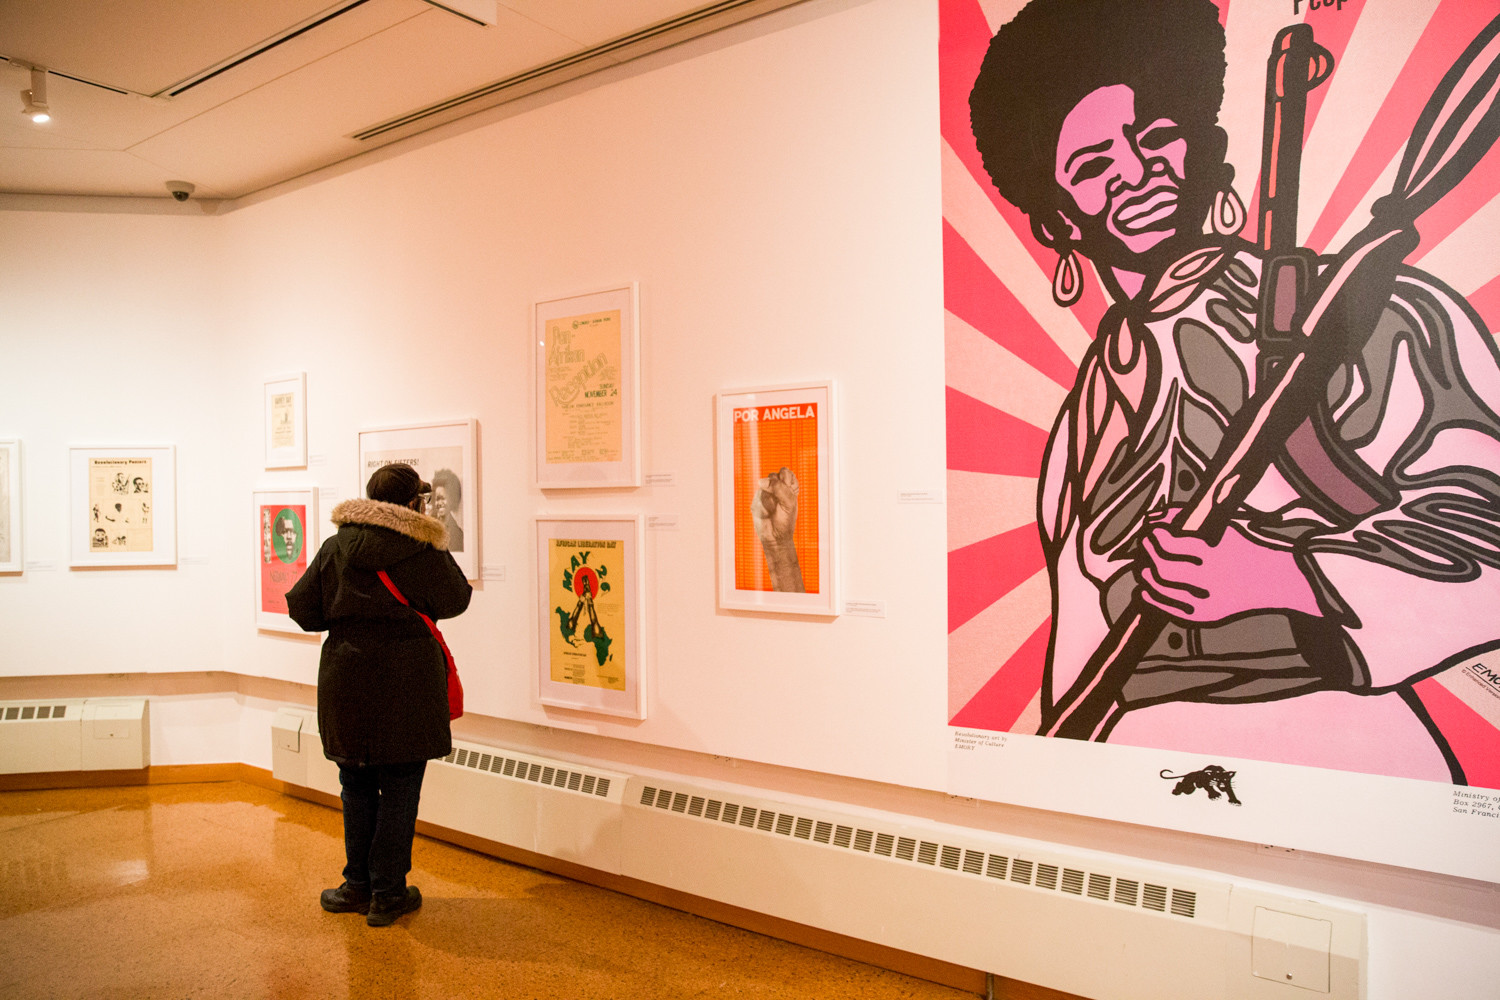 The posters in the 'Power in Print' exhibition at the Schomburg Center have a mix of design styles and aesthetics. Some were made with great attention to typefaces and layout, while others were created to share news of art and culture gatherings or notices of political rallies.